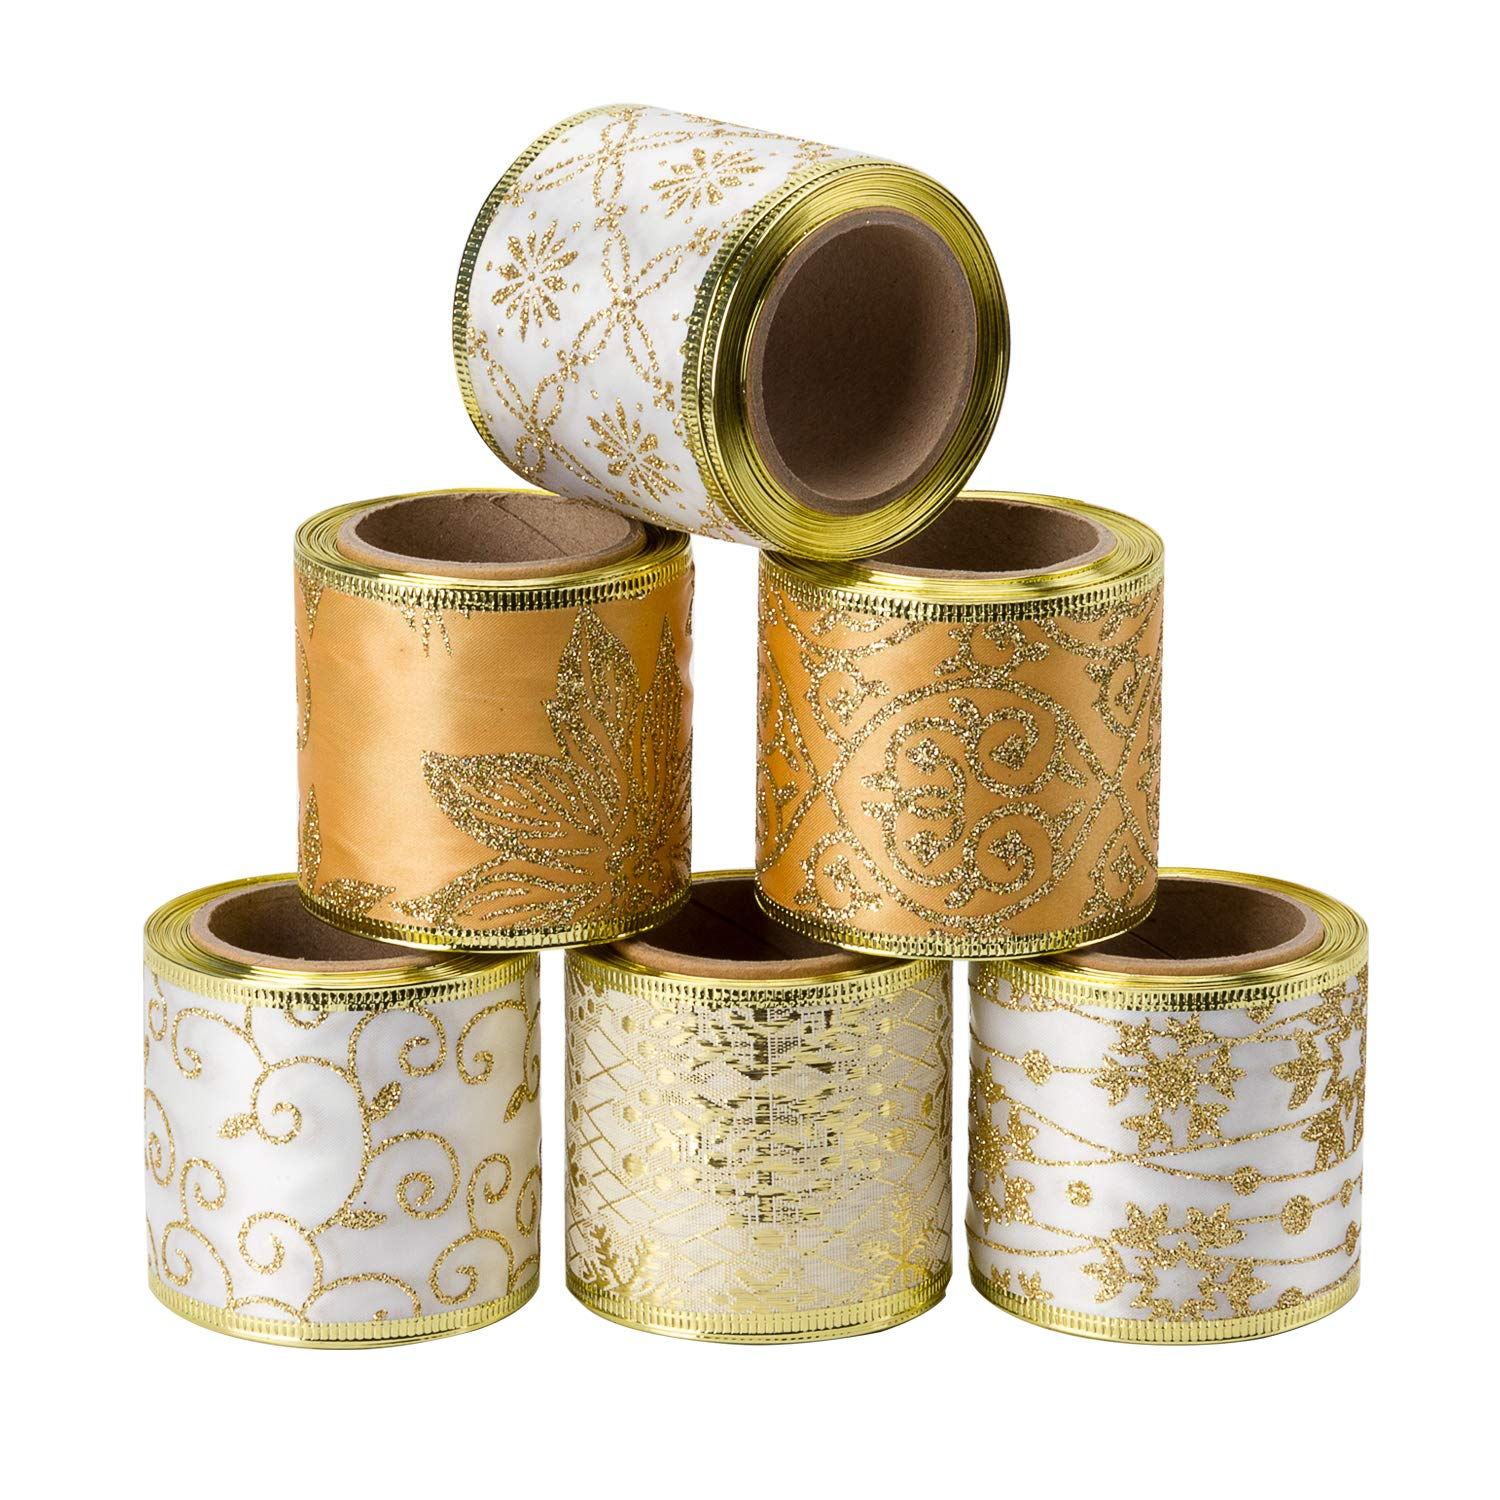 LaRibbons Wired Christmas Holiday Ribbon - 6 Rolls Swirl Sheer Glitter Ribbon - 2.5 inch x 5 Yard Each Roll - Gold